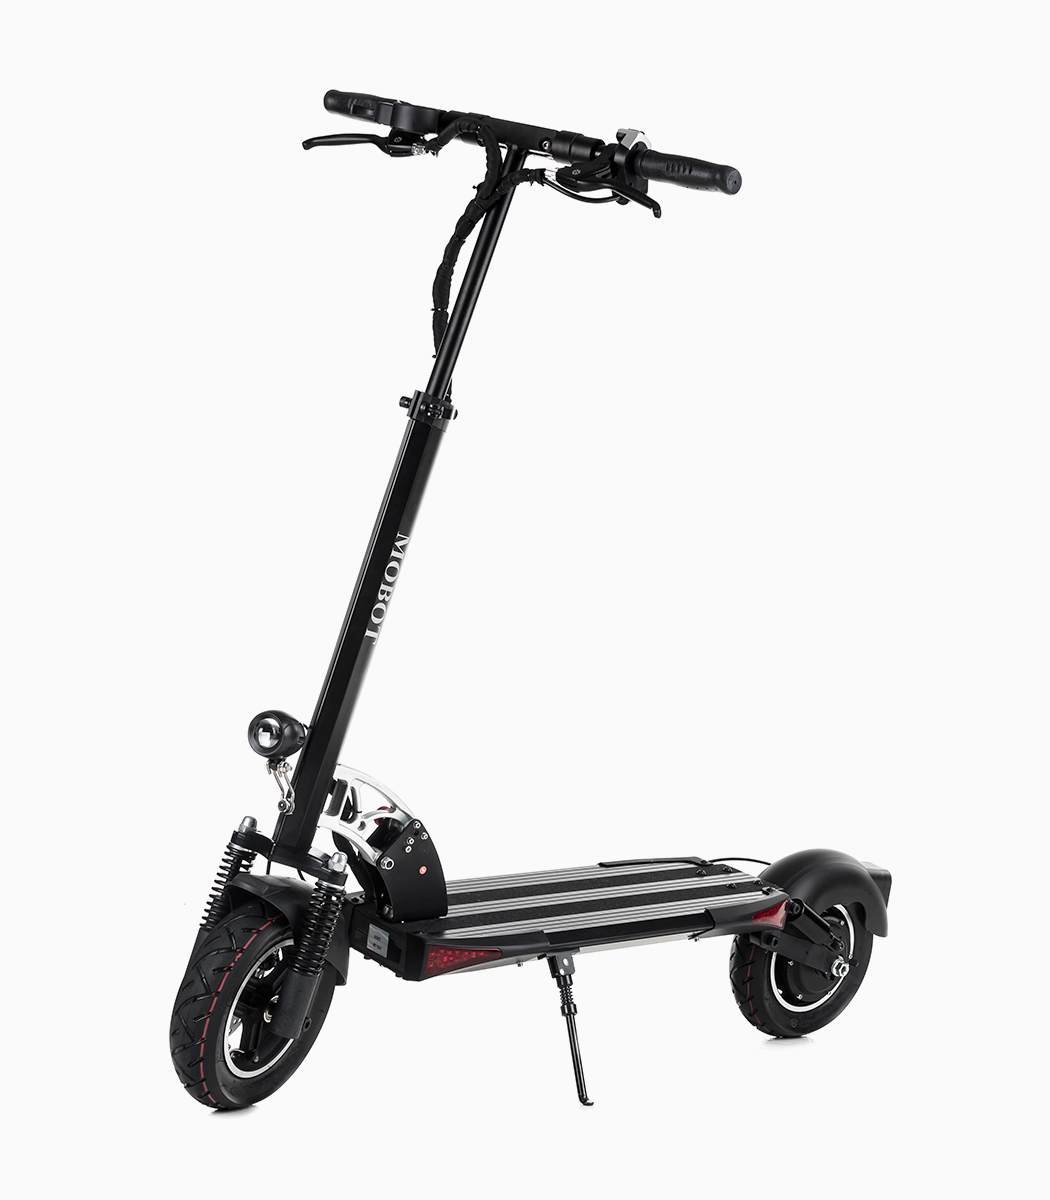 Mobot Freedom 4 Electric Scooter Series